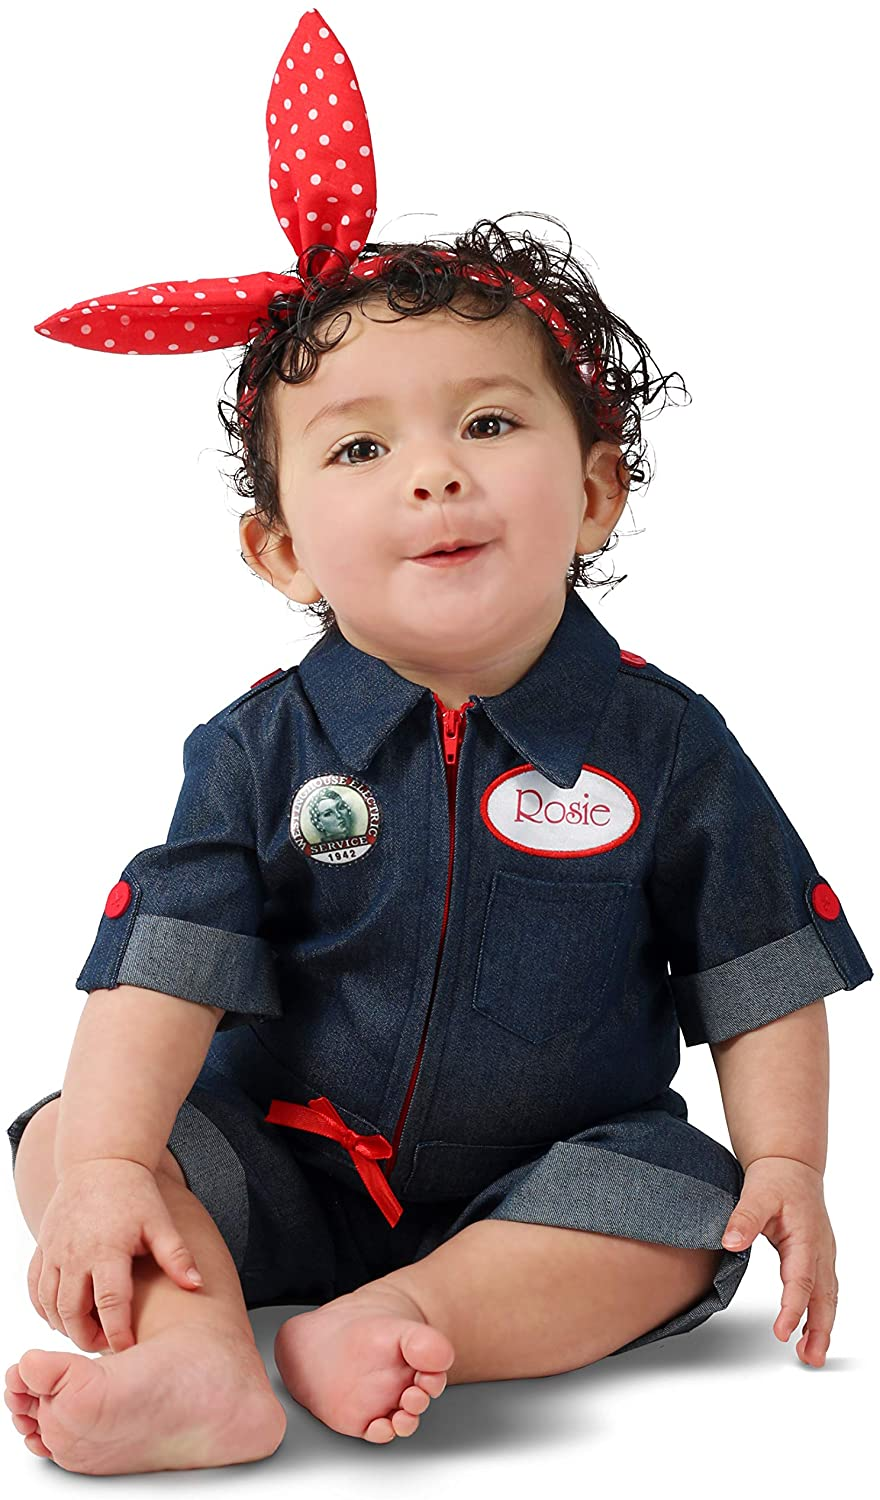 Princess Paradise Rosie The Riveter Baby/Toddler Costume